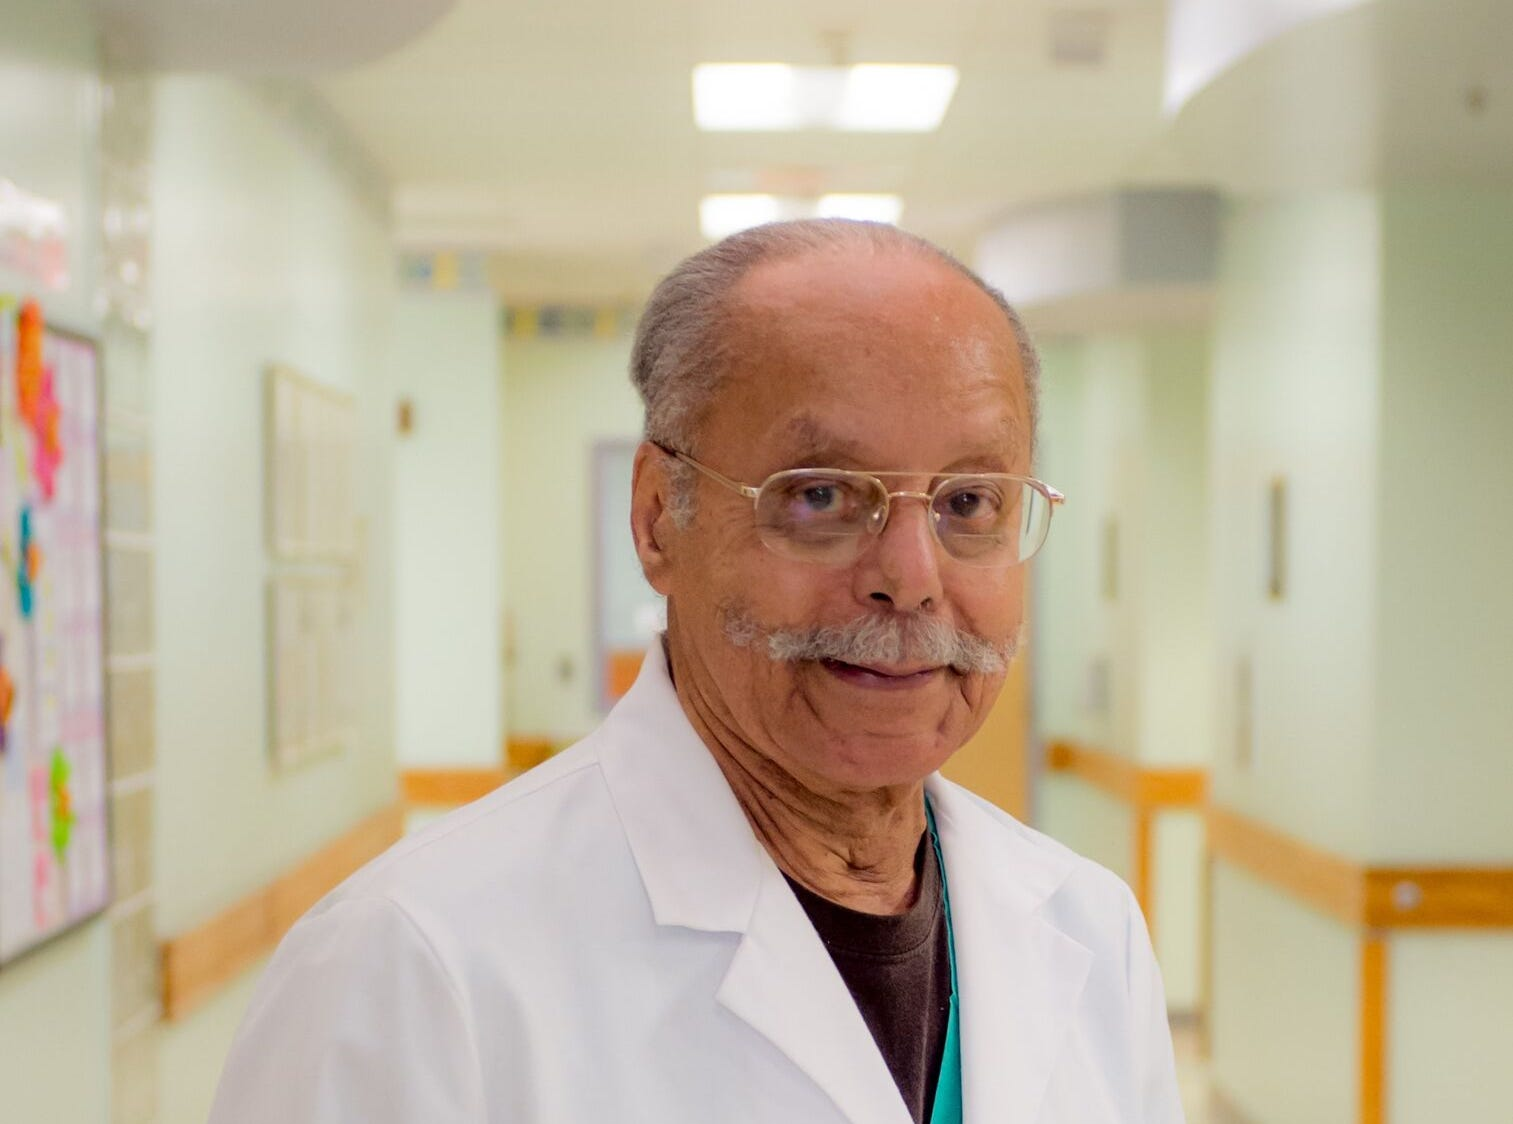 Dr. A.D. Brickler is retiring from Tallahassee Memorial Hospital at the age of 90.